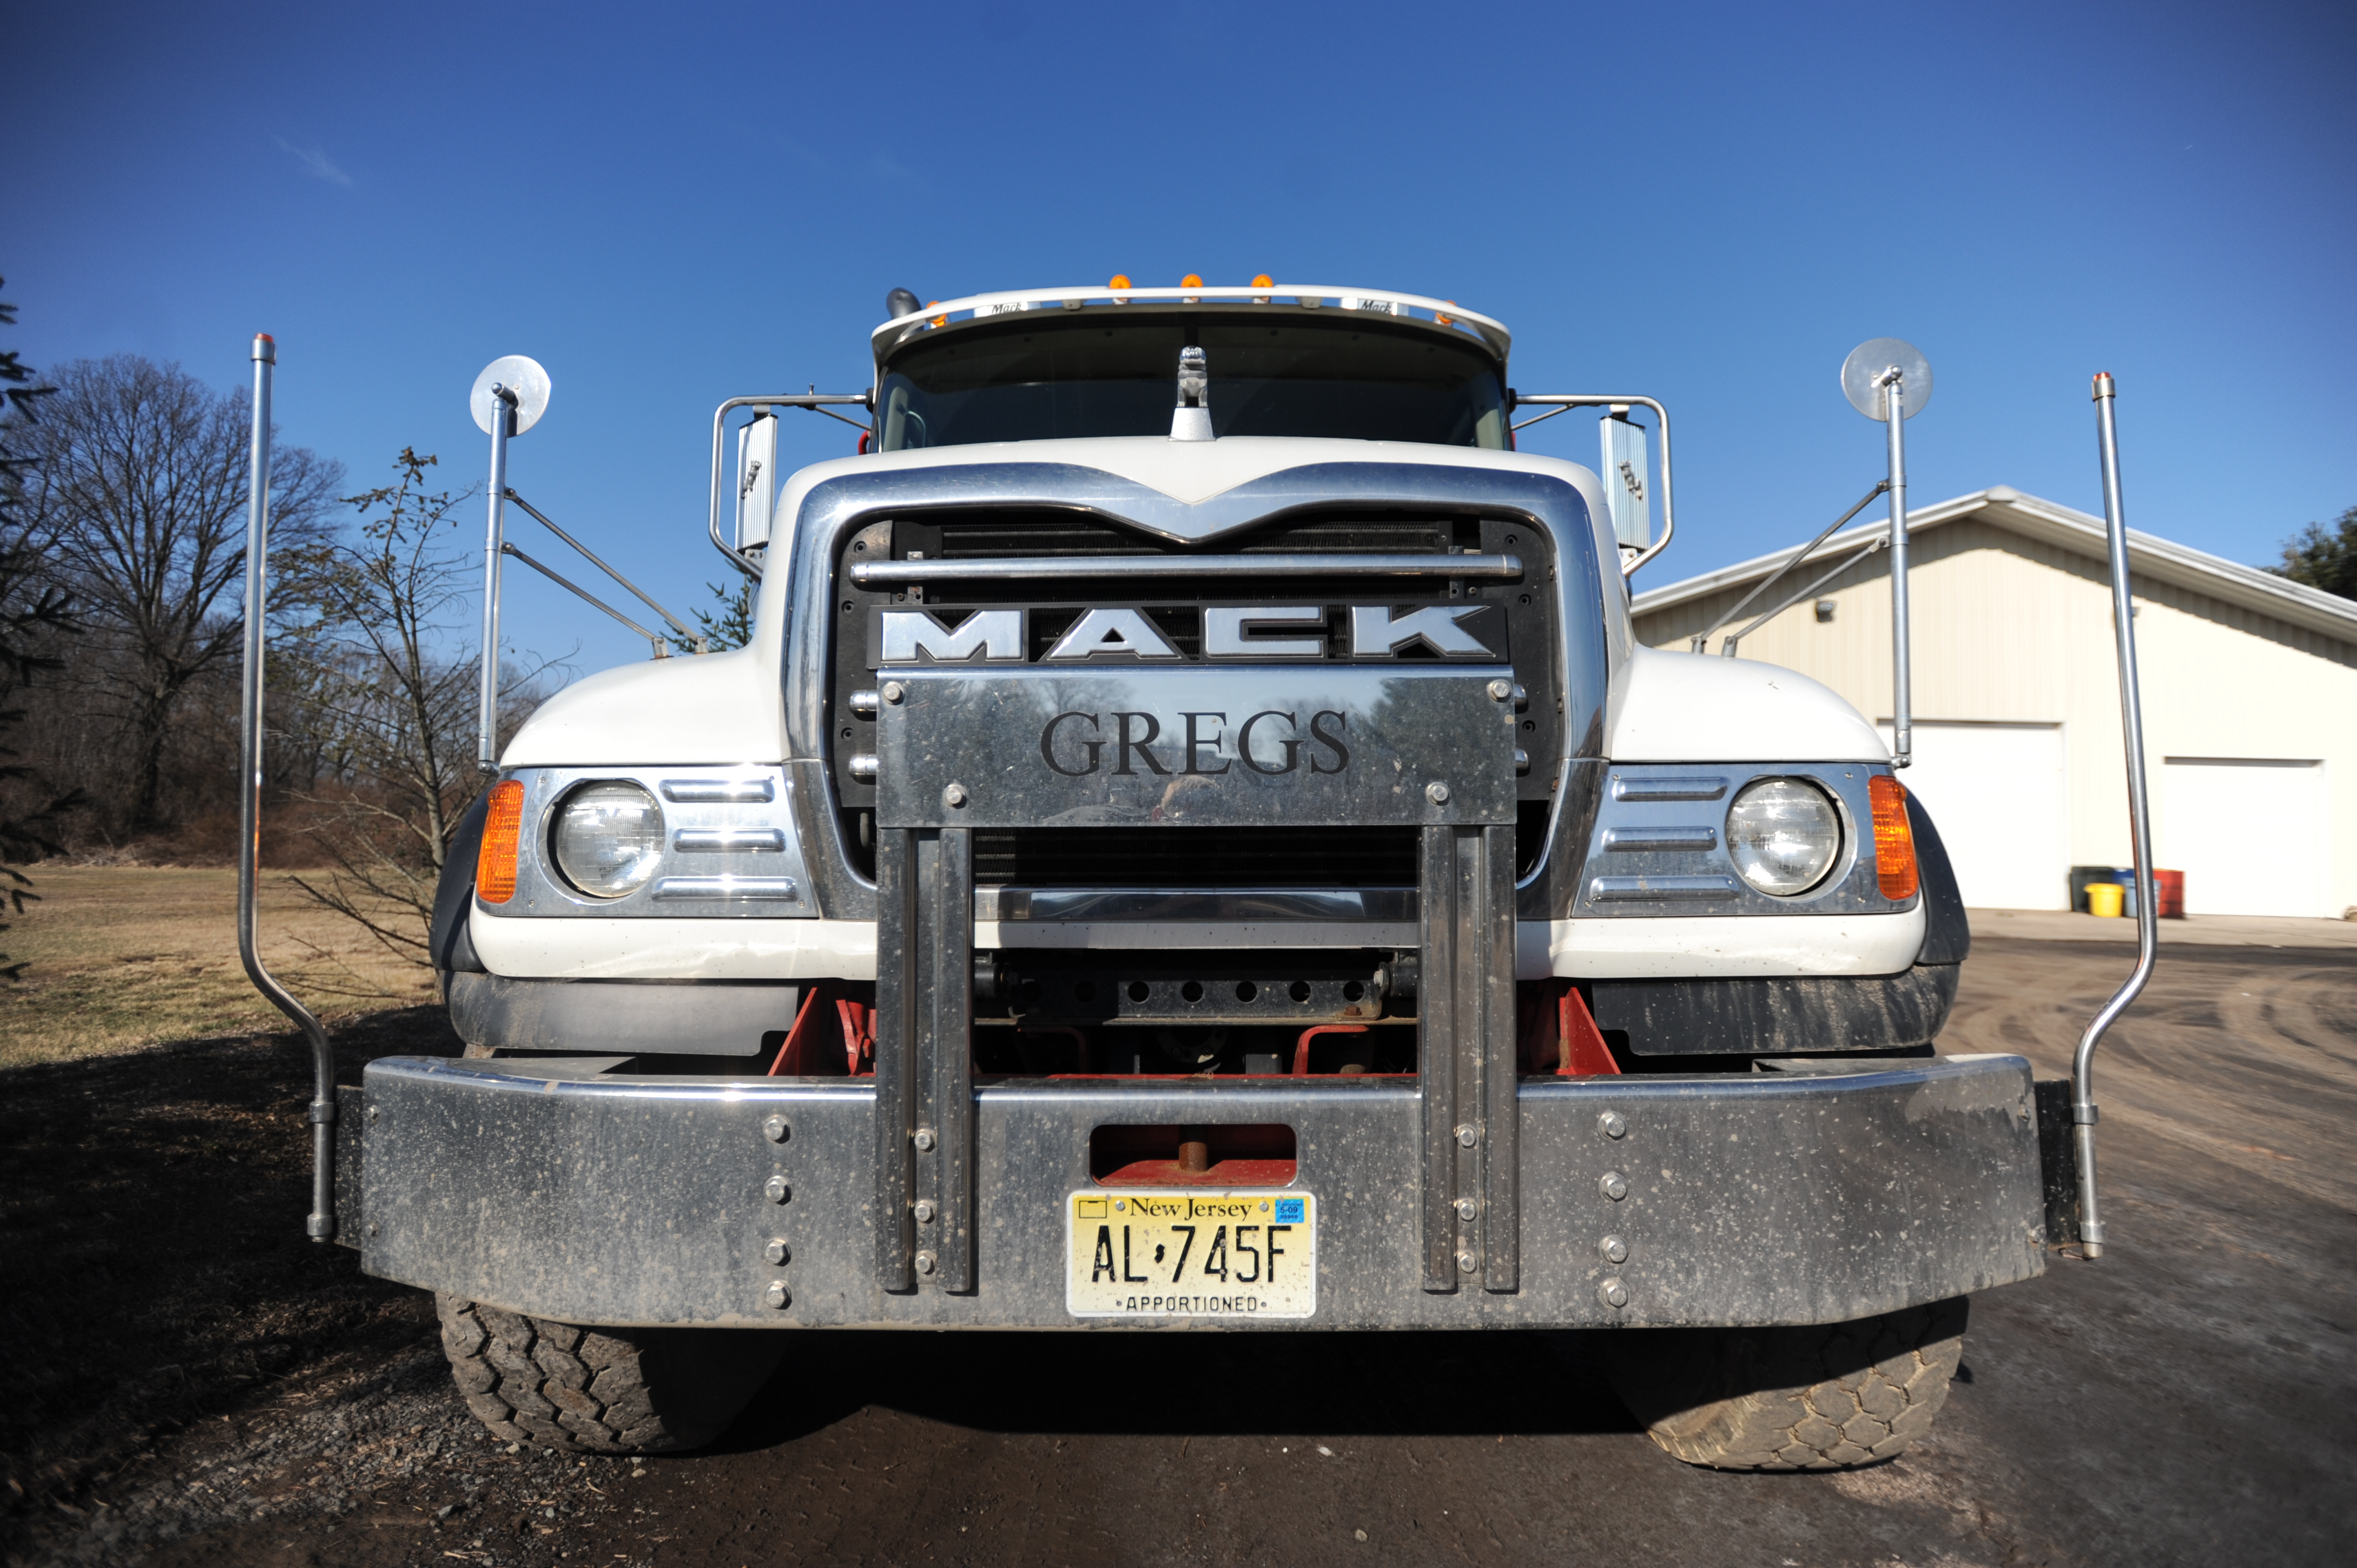 File:Front view of a MACK truck.jpg - Wikimedia Commons